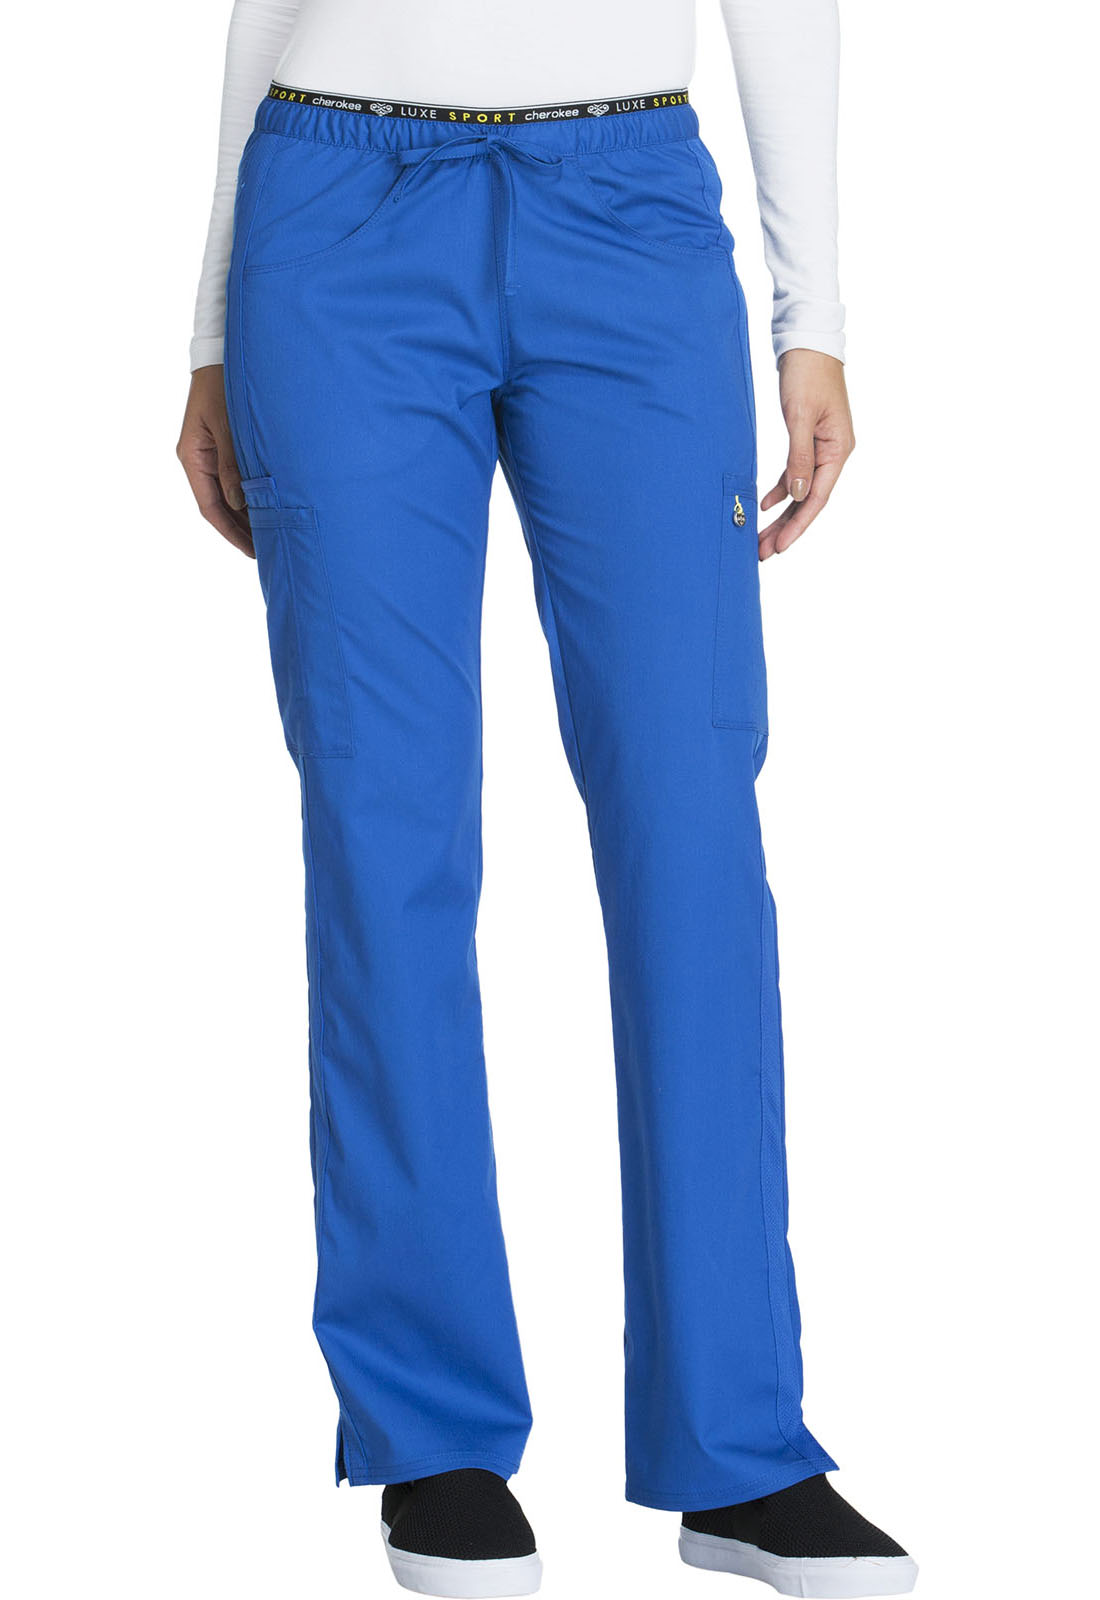 5dce7d90c2e Luxe Sport Mid Rise Straight Leg Pull-on Pant in Royal CK003T-ROYV ...